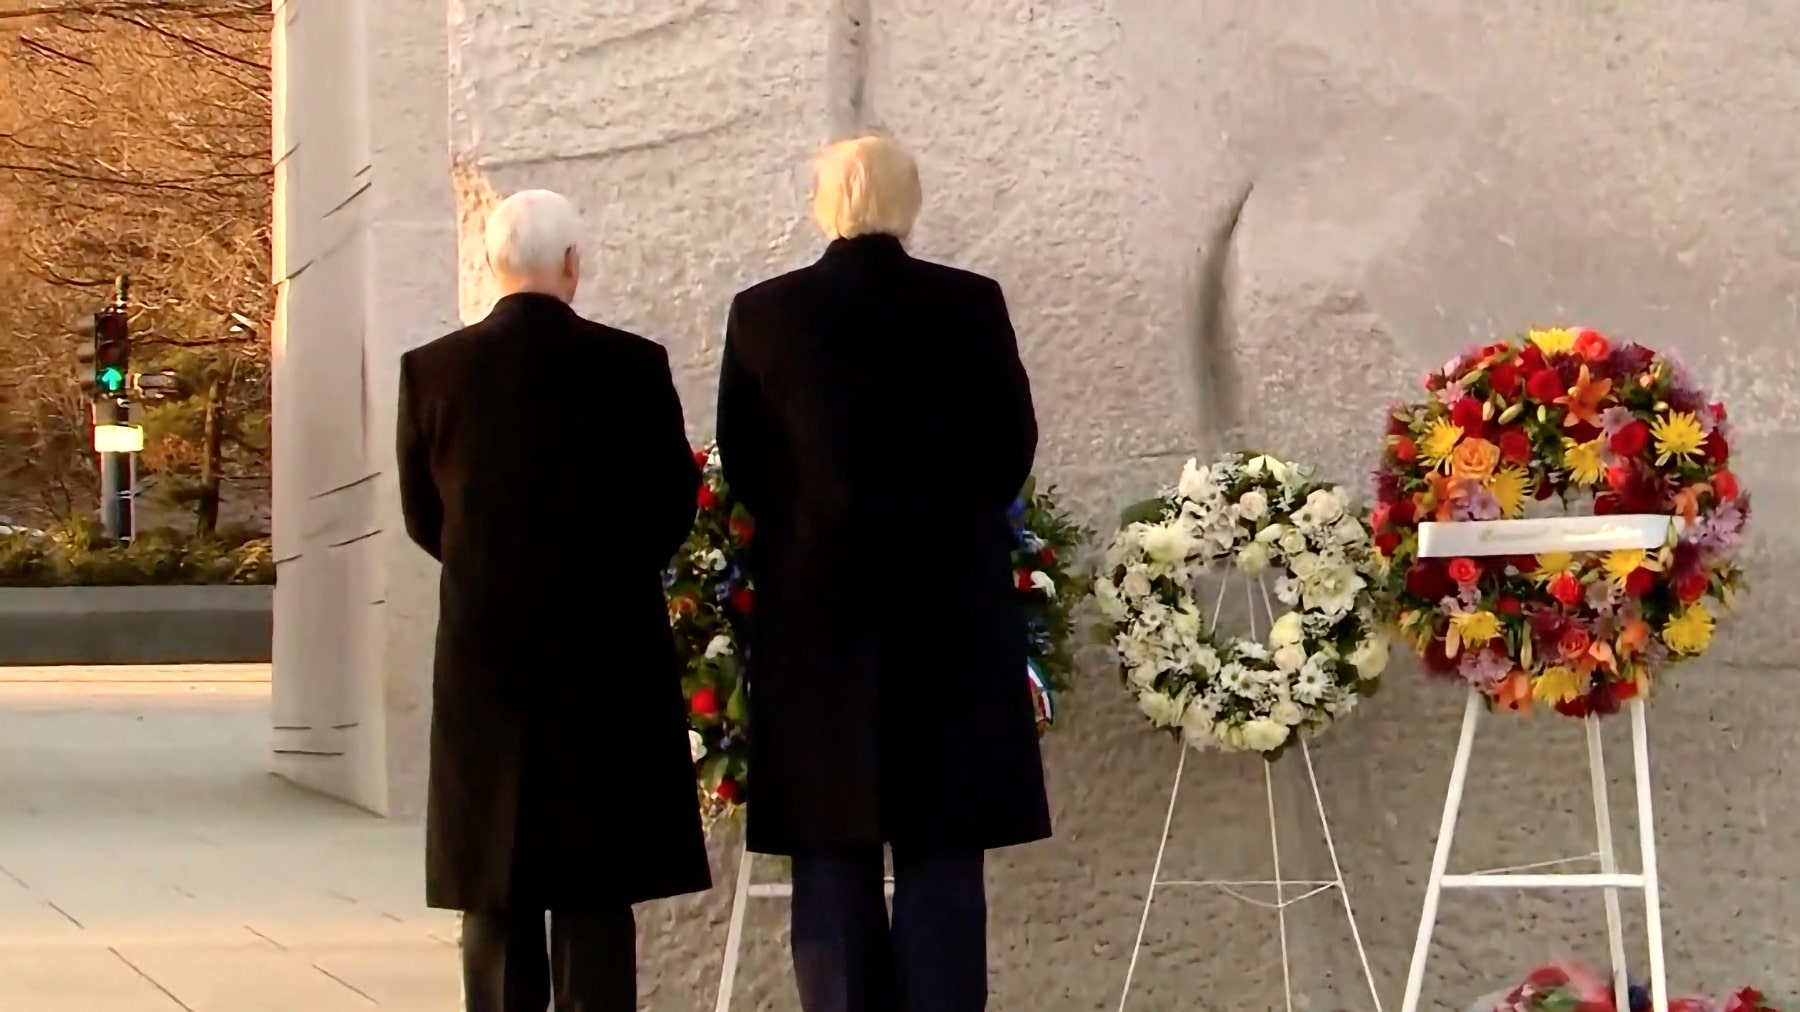 WATCH: President Trump and VP Pence visit Martin Luther King Jr. Memorial on MLK Day